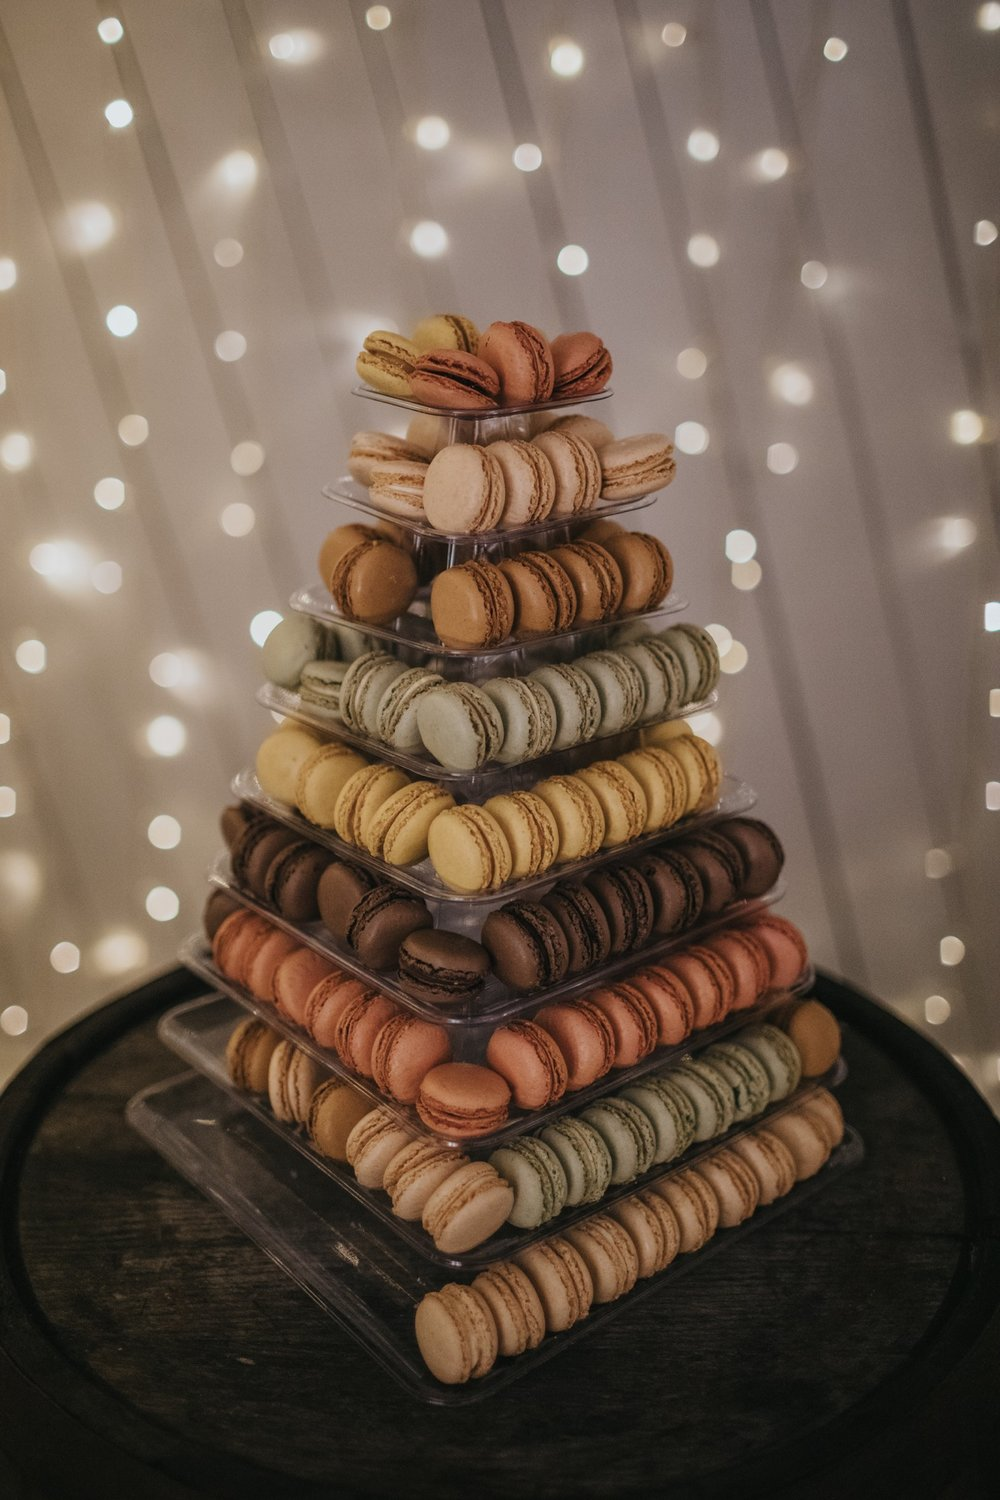 Marvellous macaroons in place of the wedding cake at The Normans. Photo by Bloom Weddings